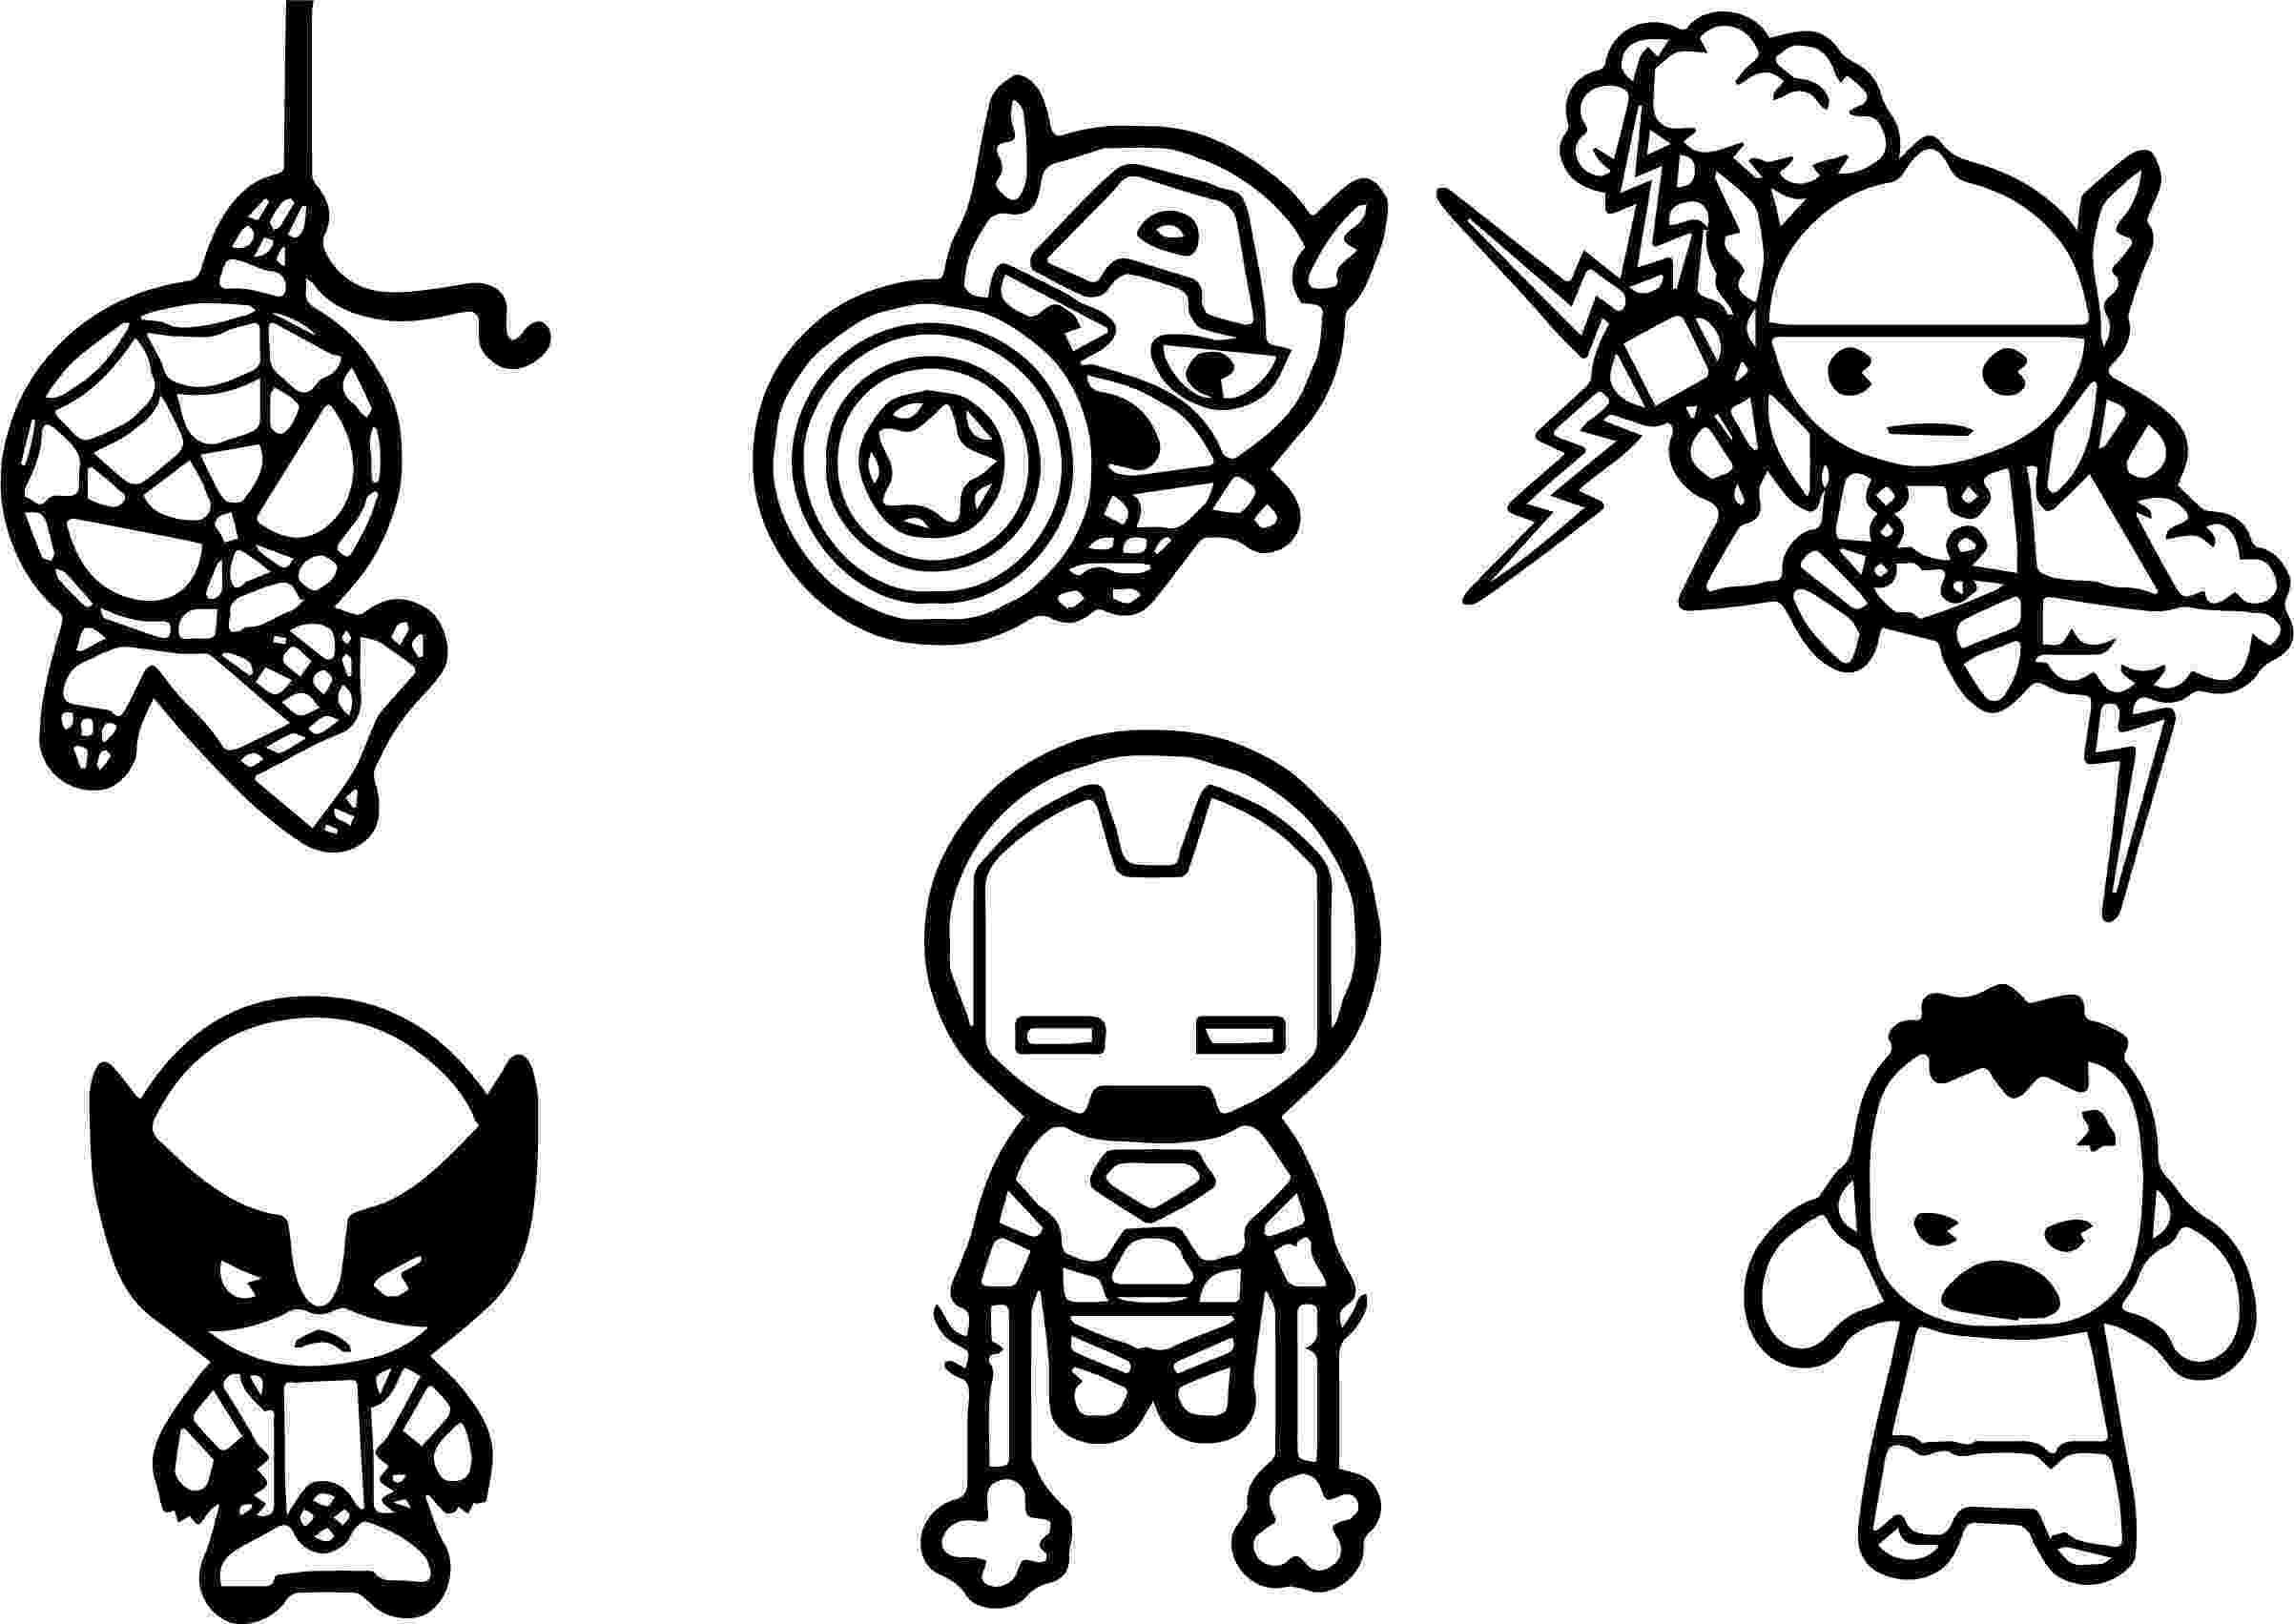 avengers colouring pages superhero coloring pages best coloring pages for kids pages avengers colouring